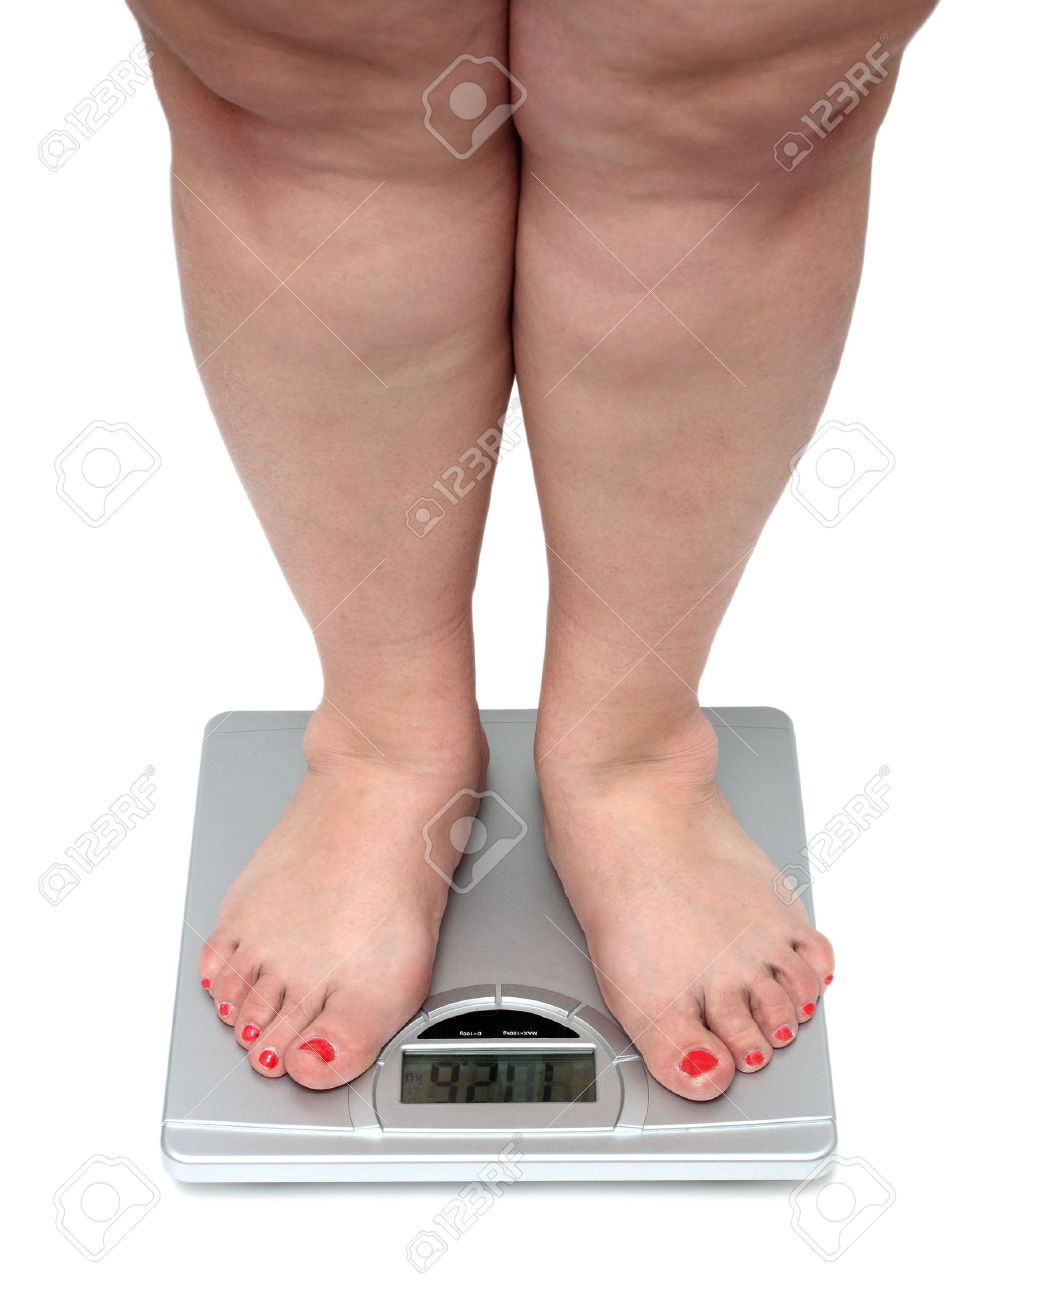 women legs with overweight standing on bathroom scales Stock Photo - 3768809